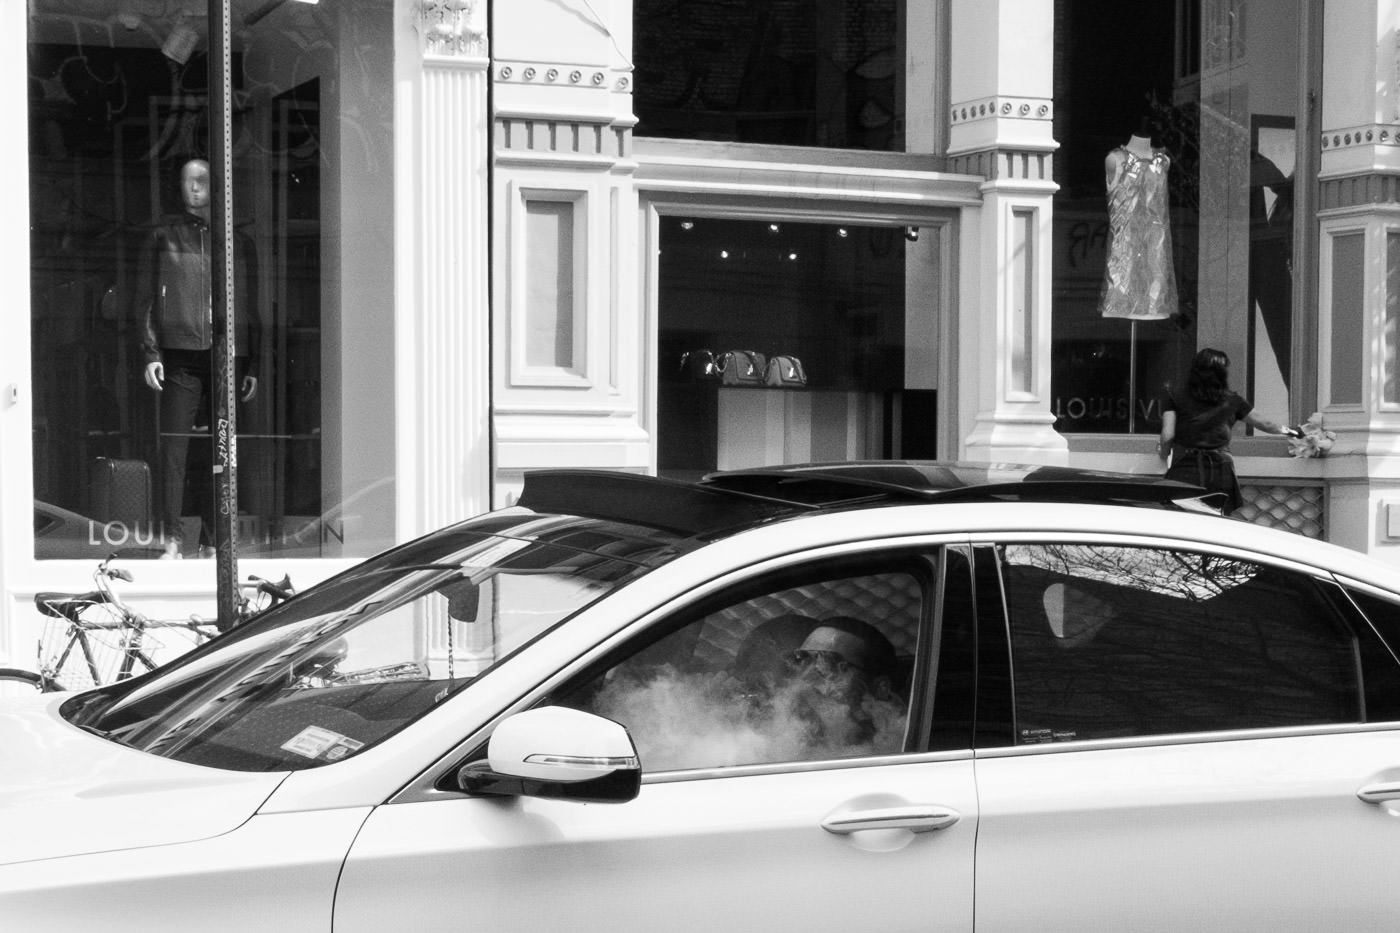 Street photography: Man smoking inside car on the street